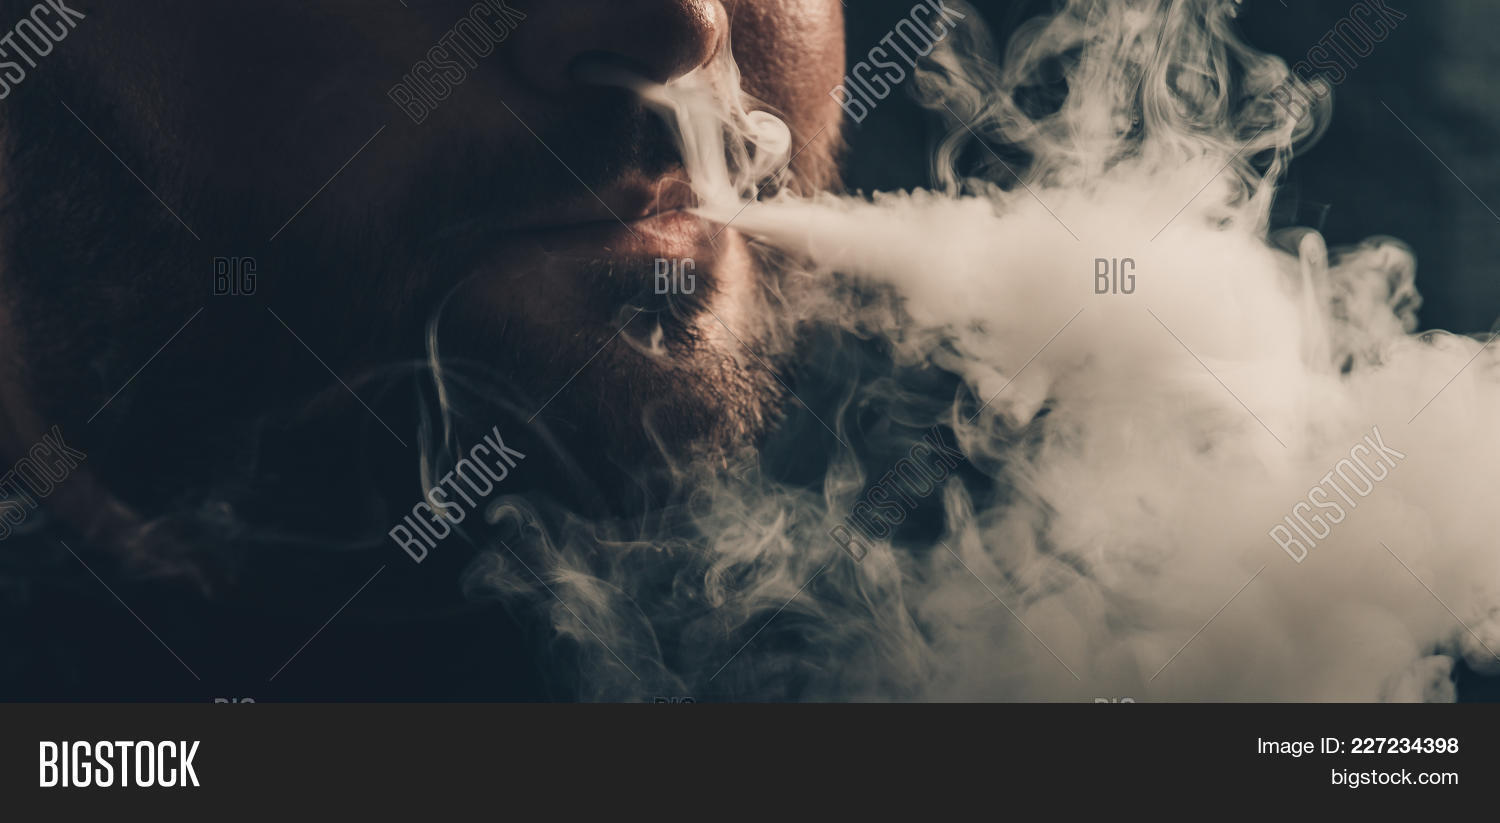 Man Vaping E-cigarette Image & Photo (Free Trial) | Bigstock